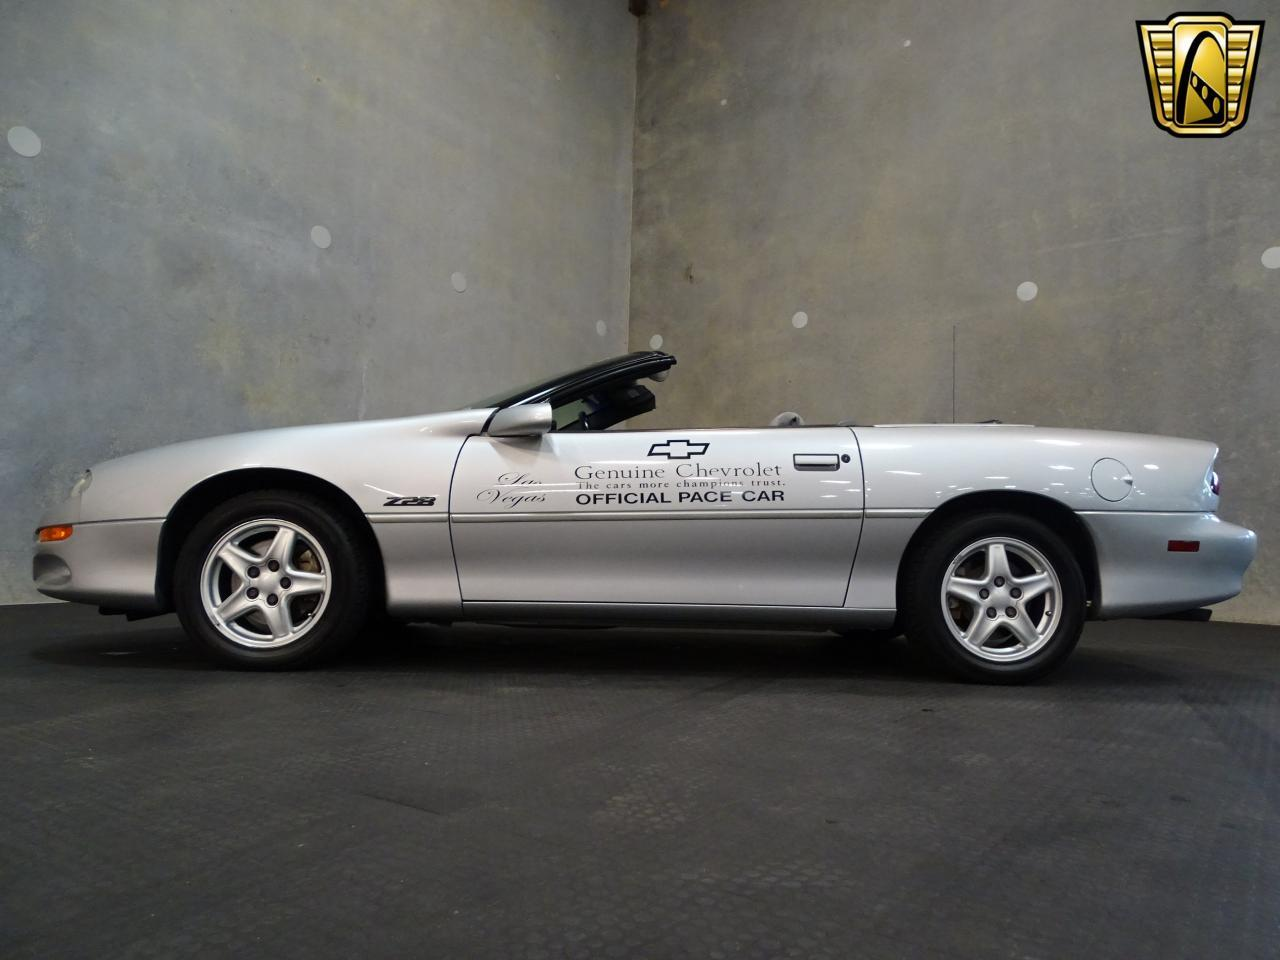 Large Picture of 1998 Chevrolet Camaro located in Florida - $10,595.00 Offered by Gateway Classic Cars - Tampa - KE0X